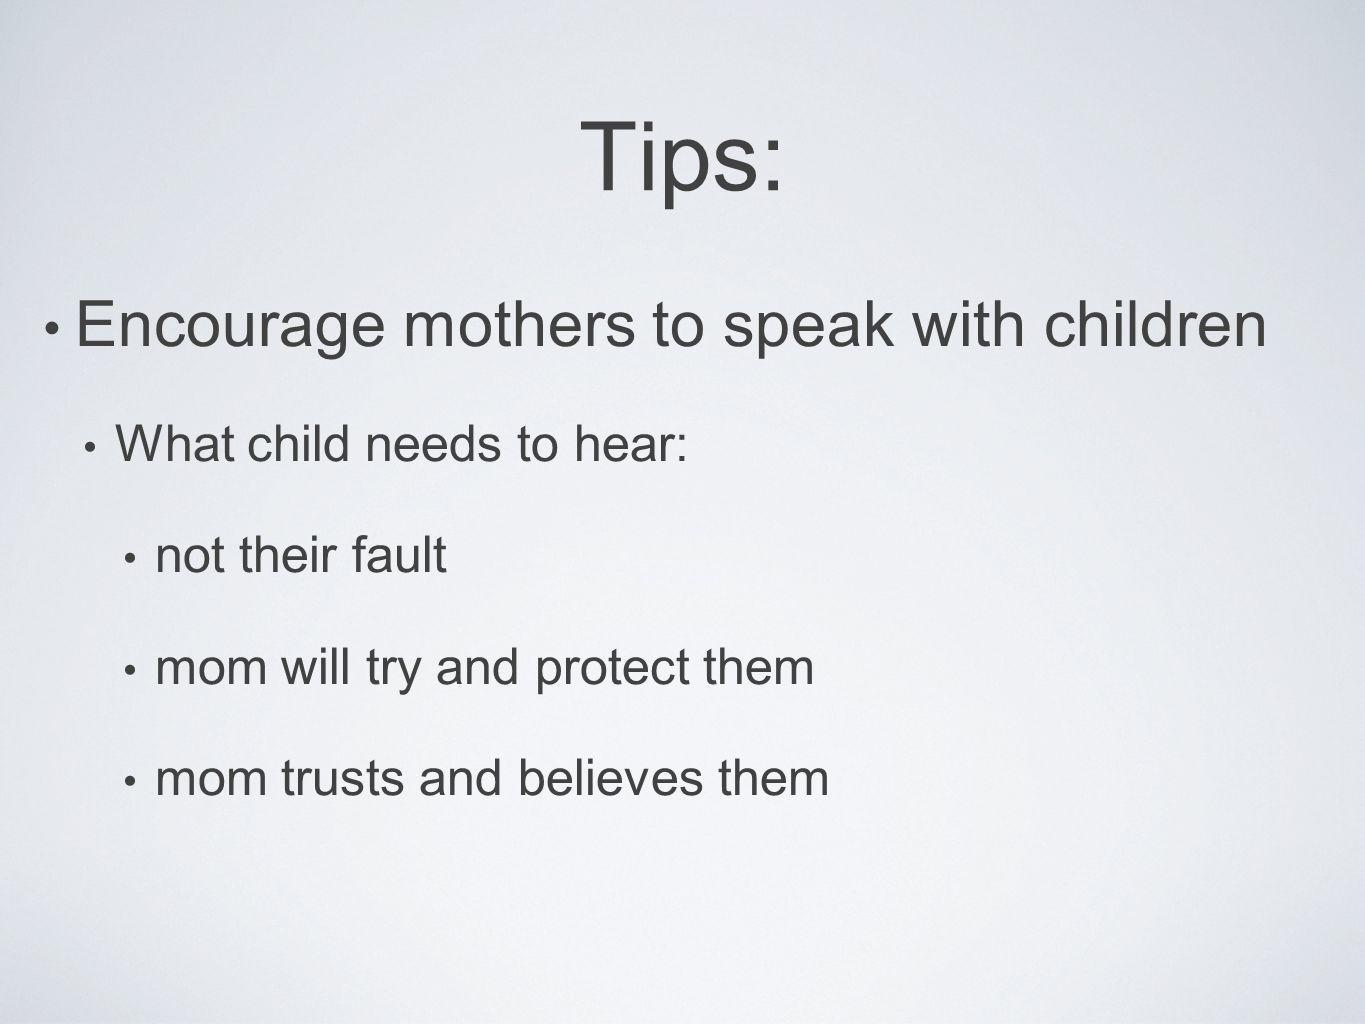 Tips: Encourage mothers to speak with children